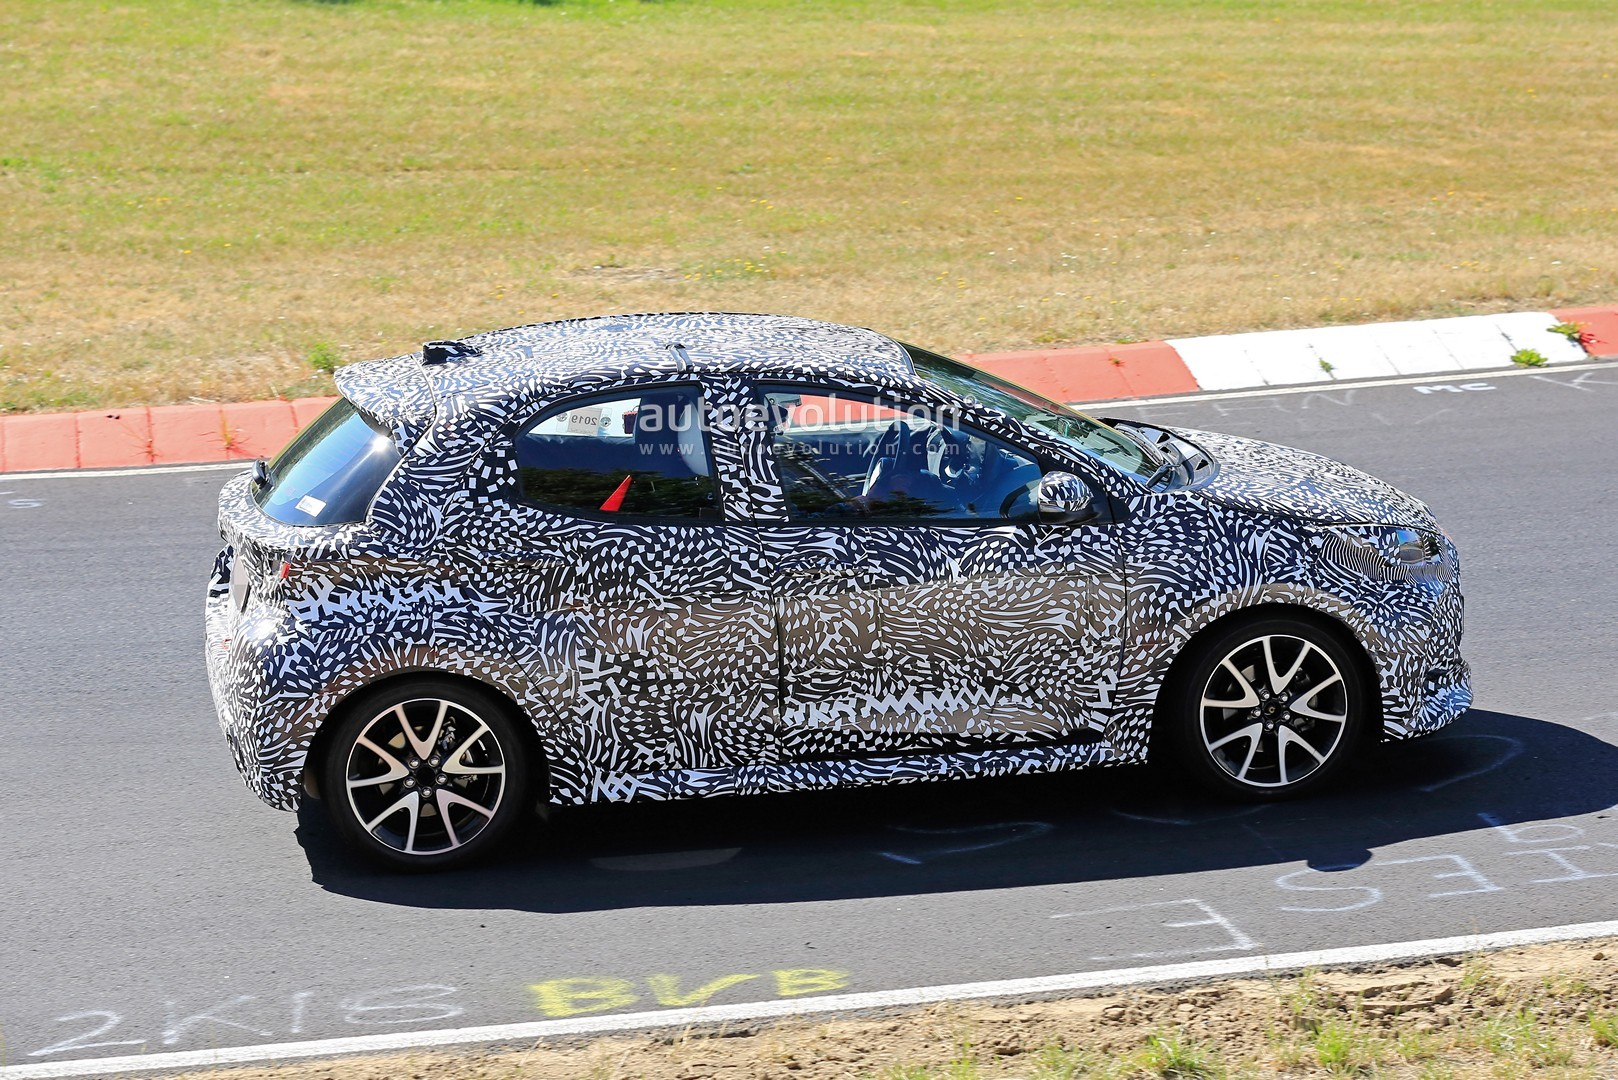 all-new-to​yota-yaris​-spied-at-​the-nurbur​gring-in-h​ybrid-and-​sport-form​s_7